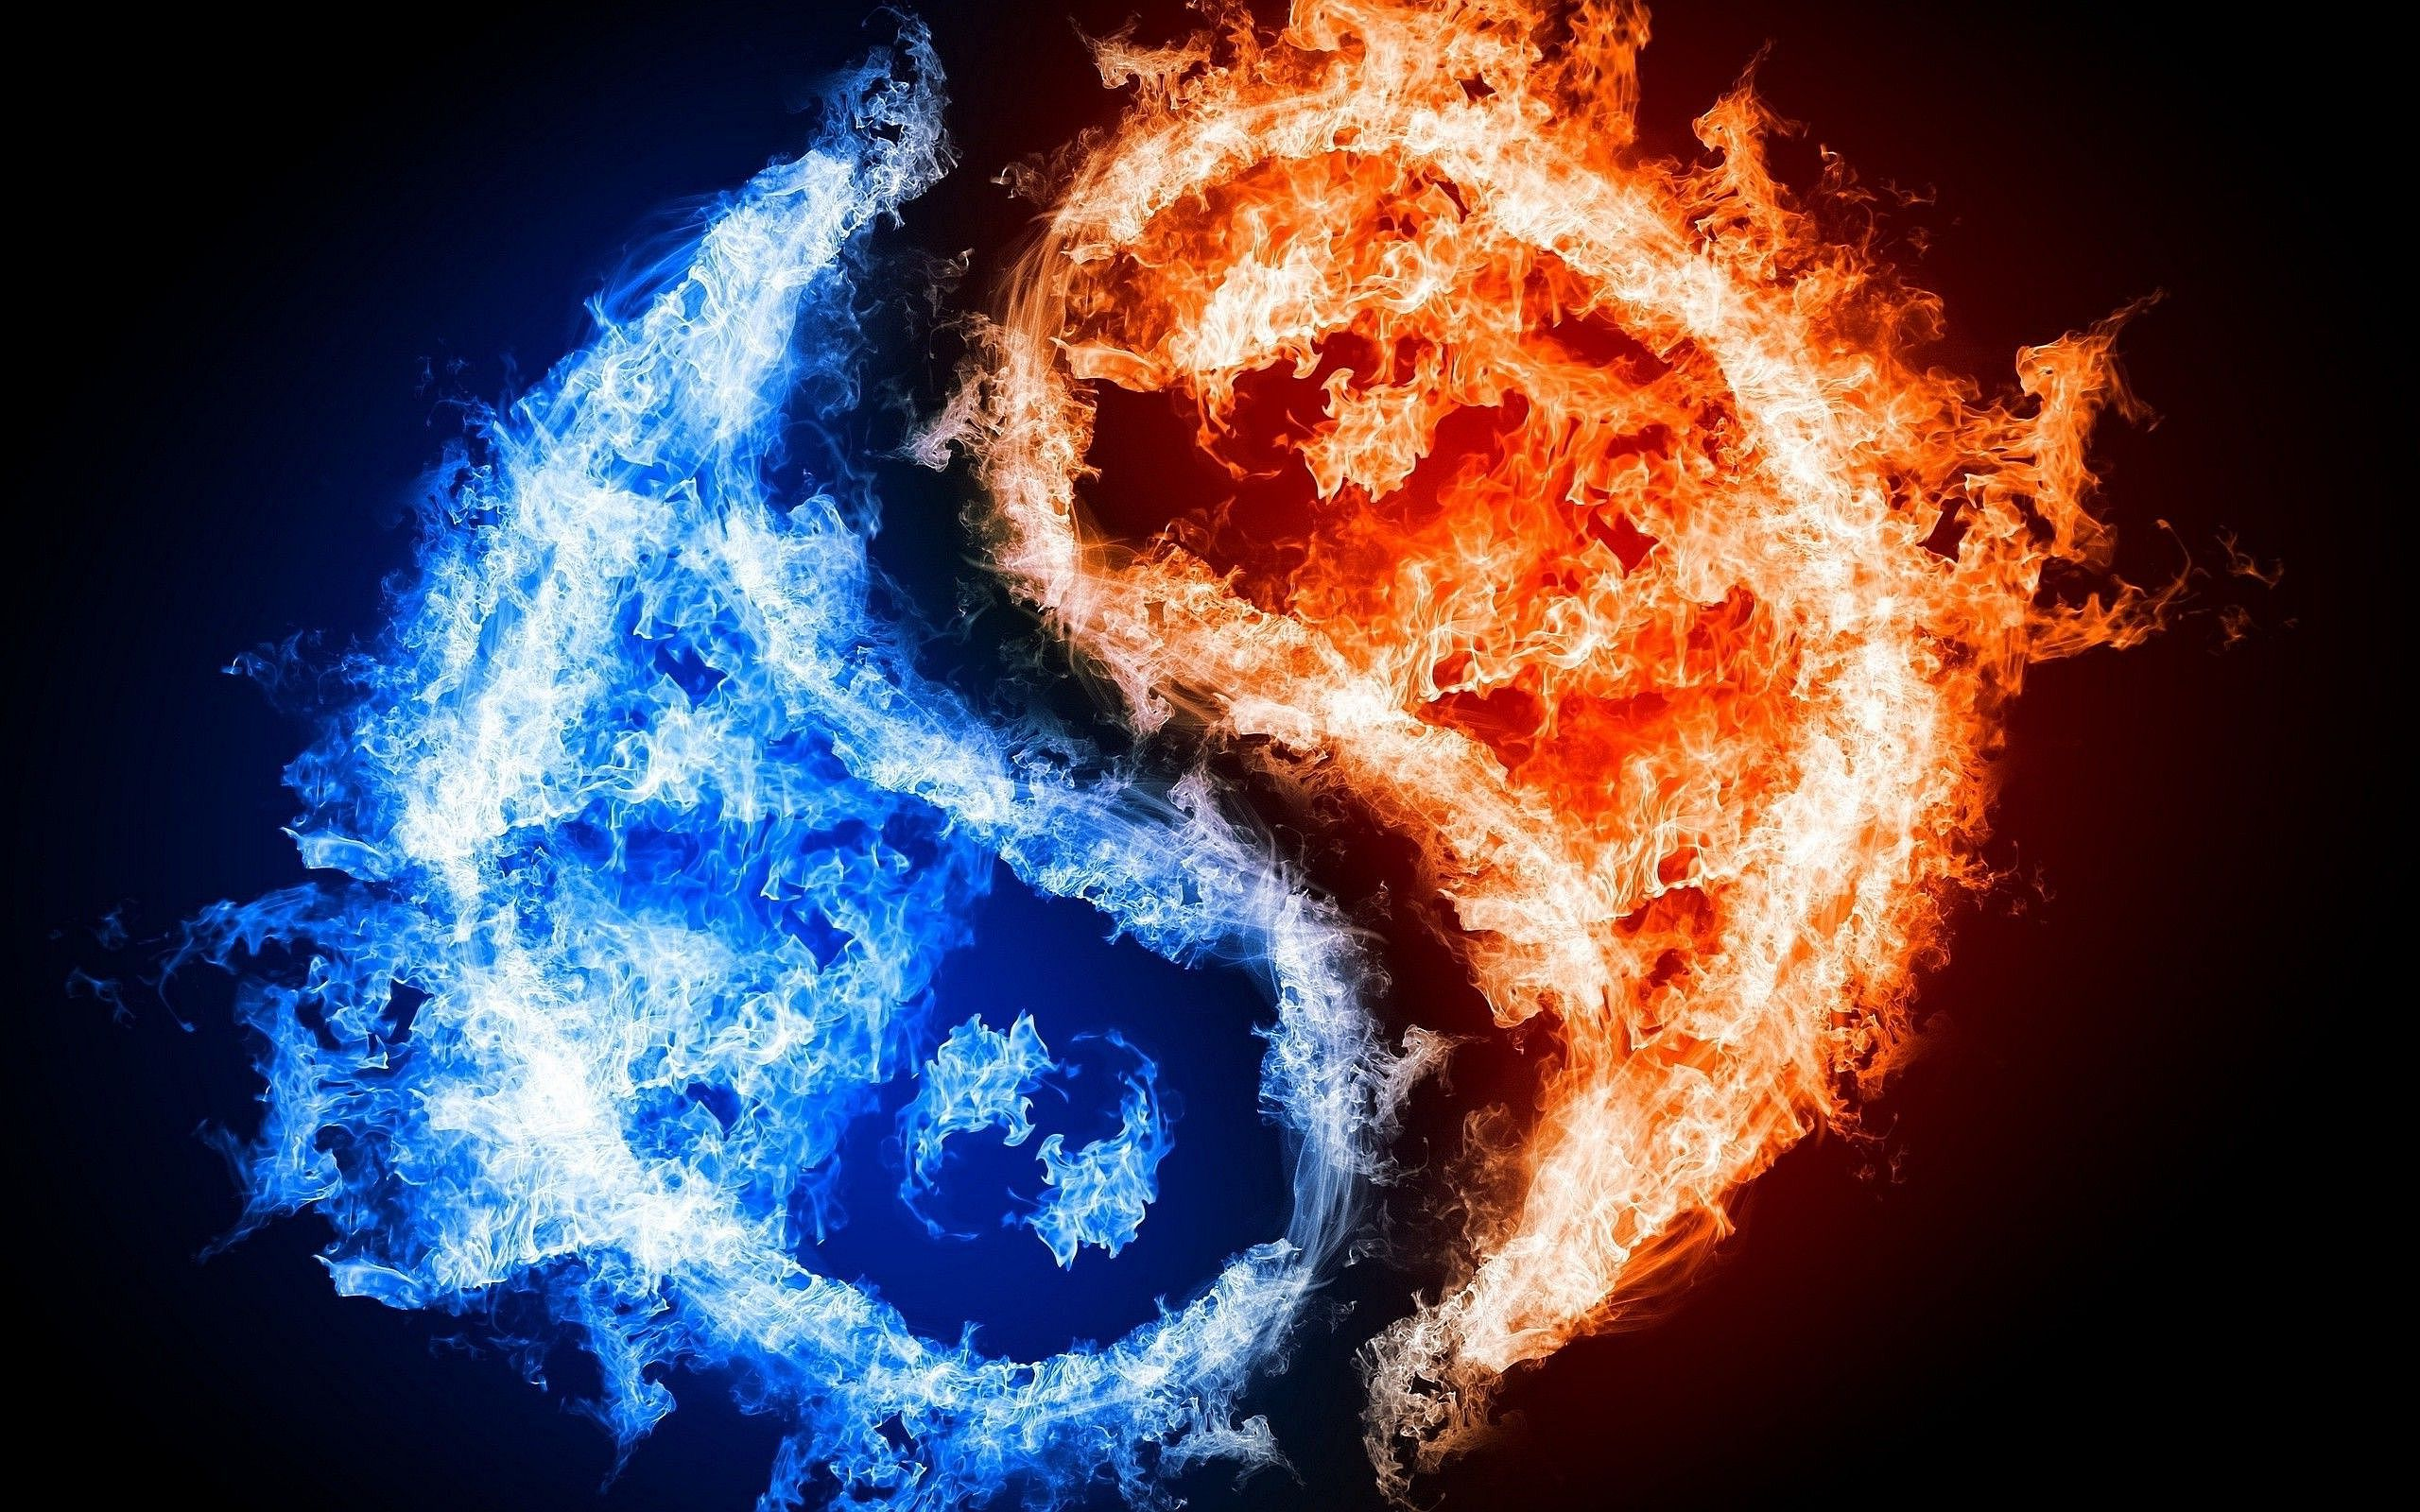 Yin Yang Fire Ice Wallpapers Pictures Yin And Yang Art In 2019